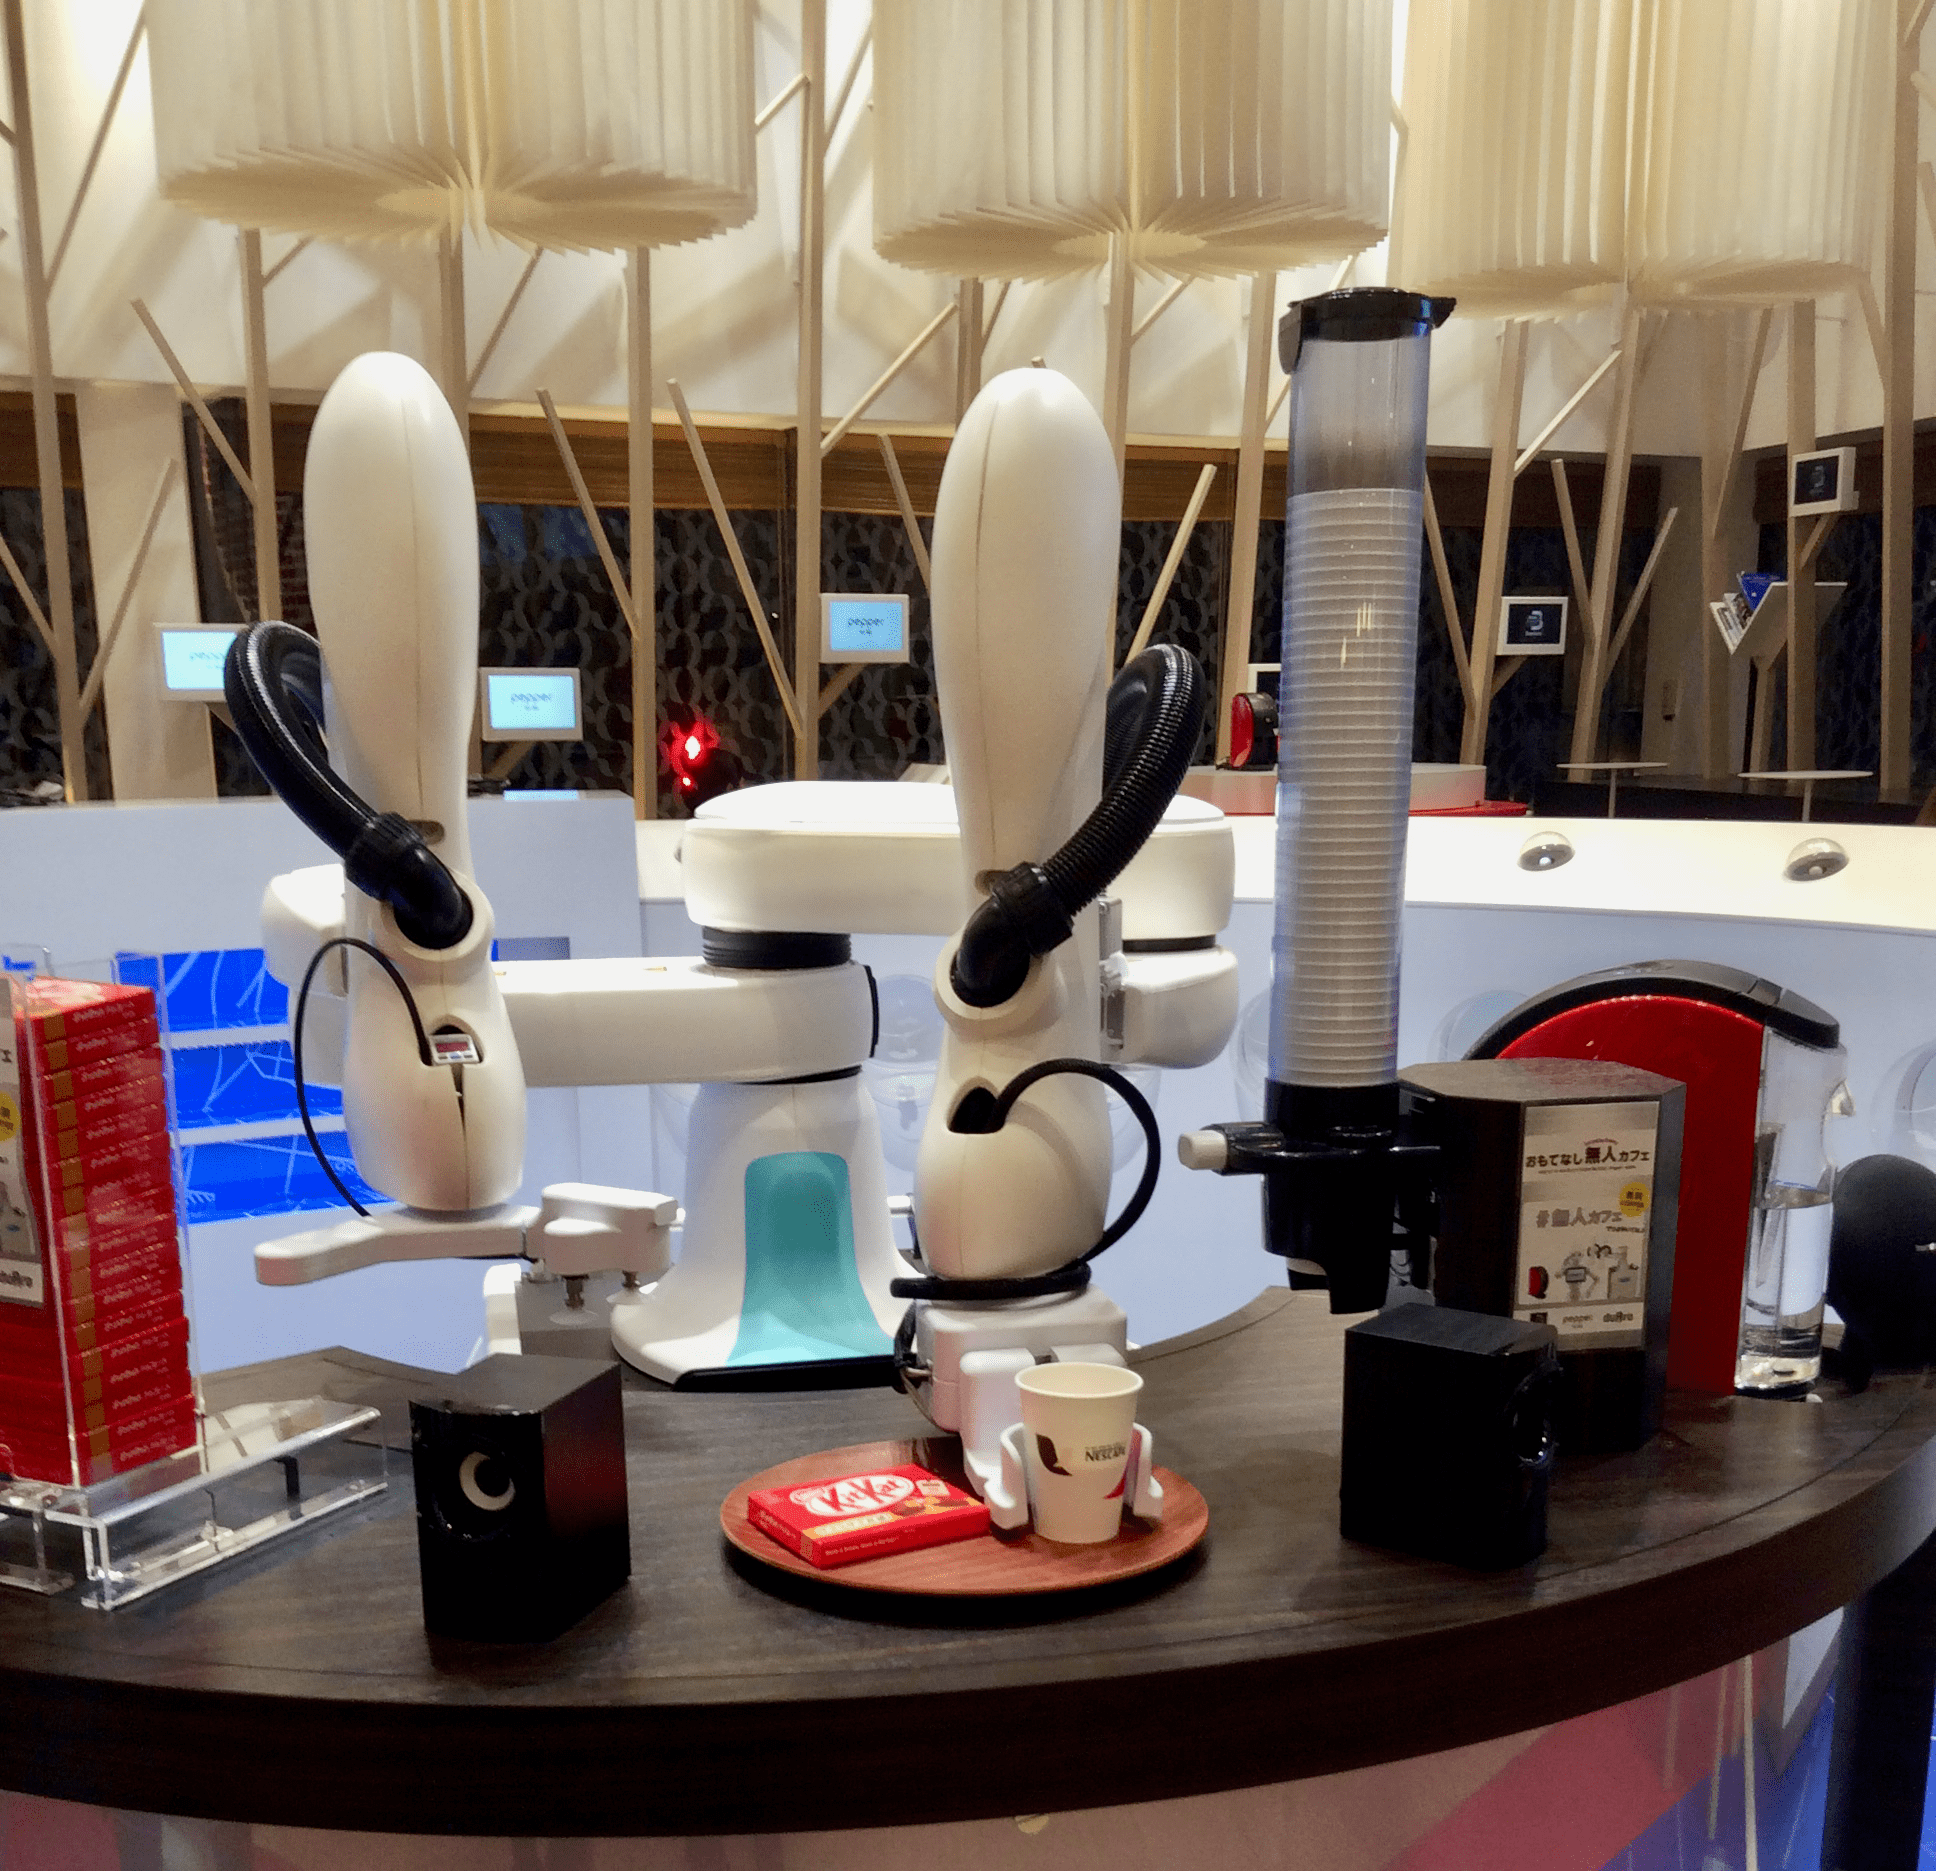 Enjoy personalized espresso served by robot arms